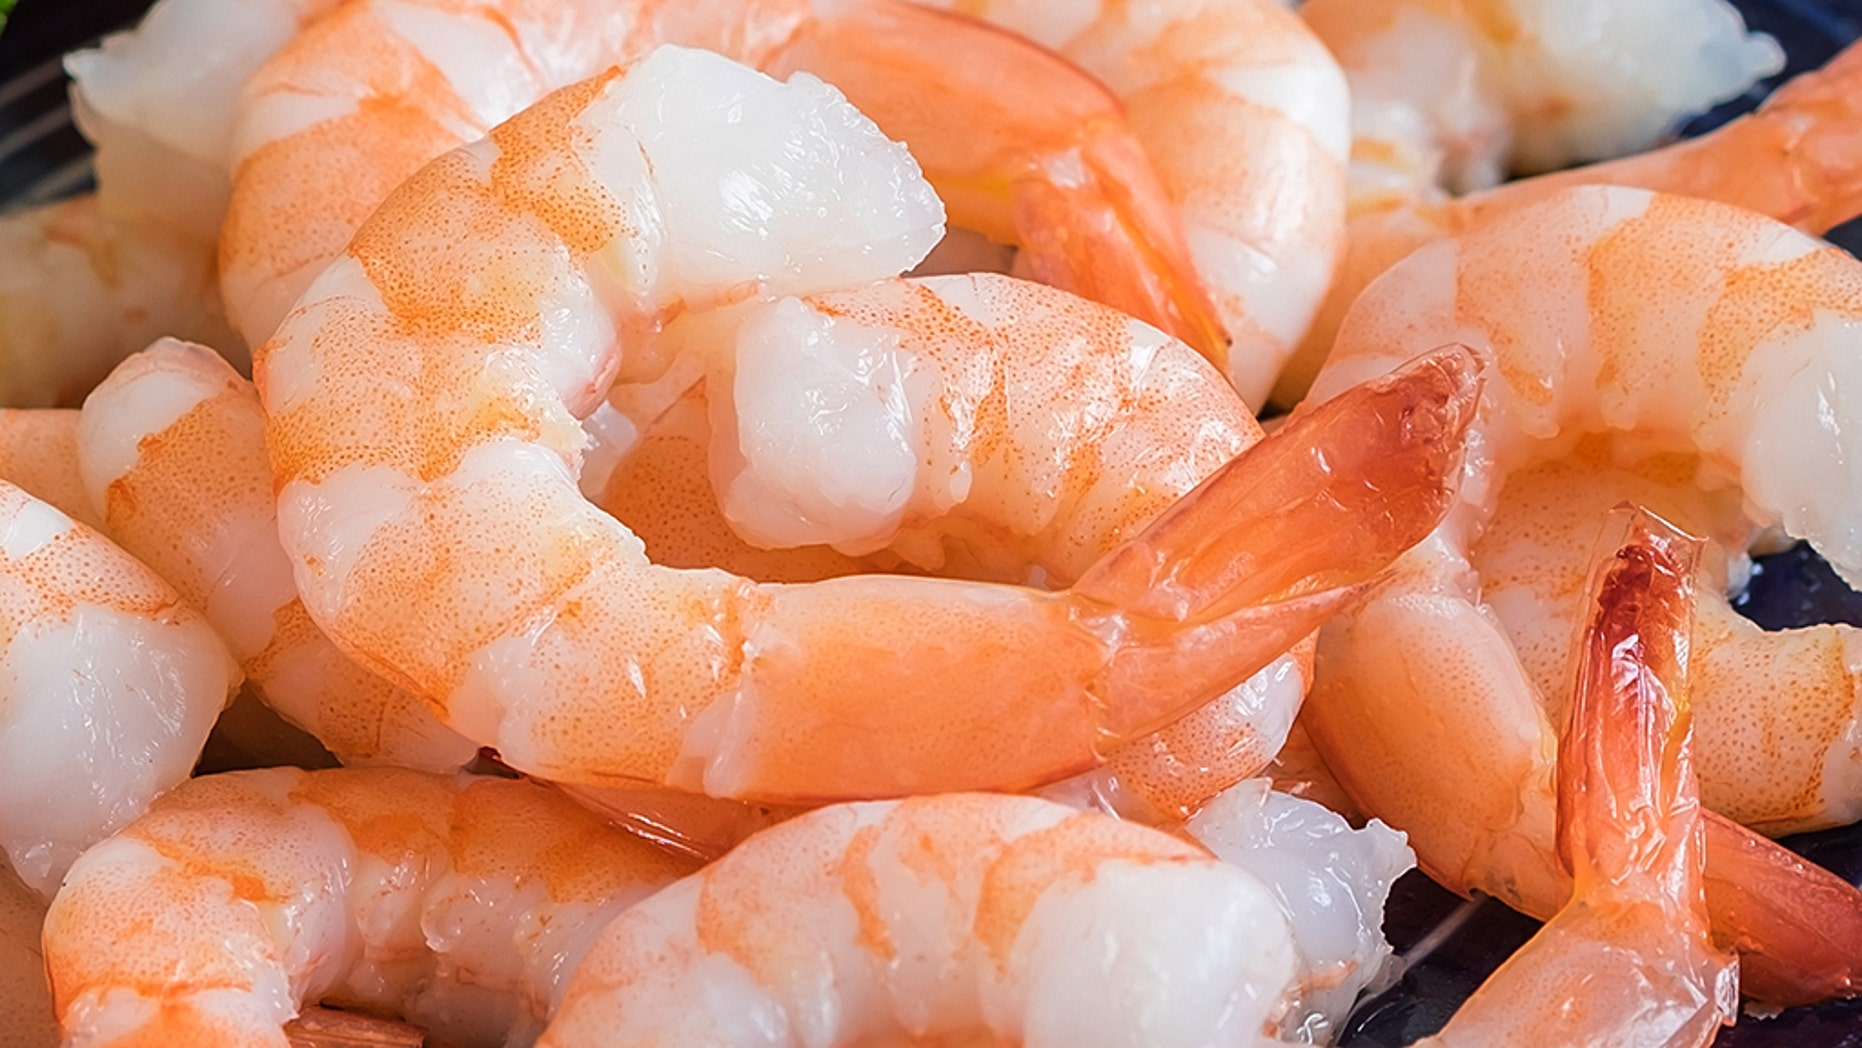 Those who eat raw or under-cooked seafood could develop a foodborne illness.